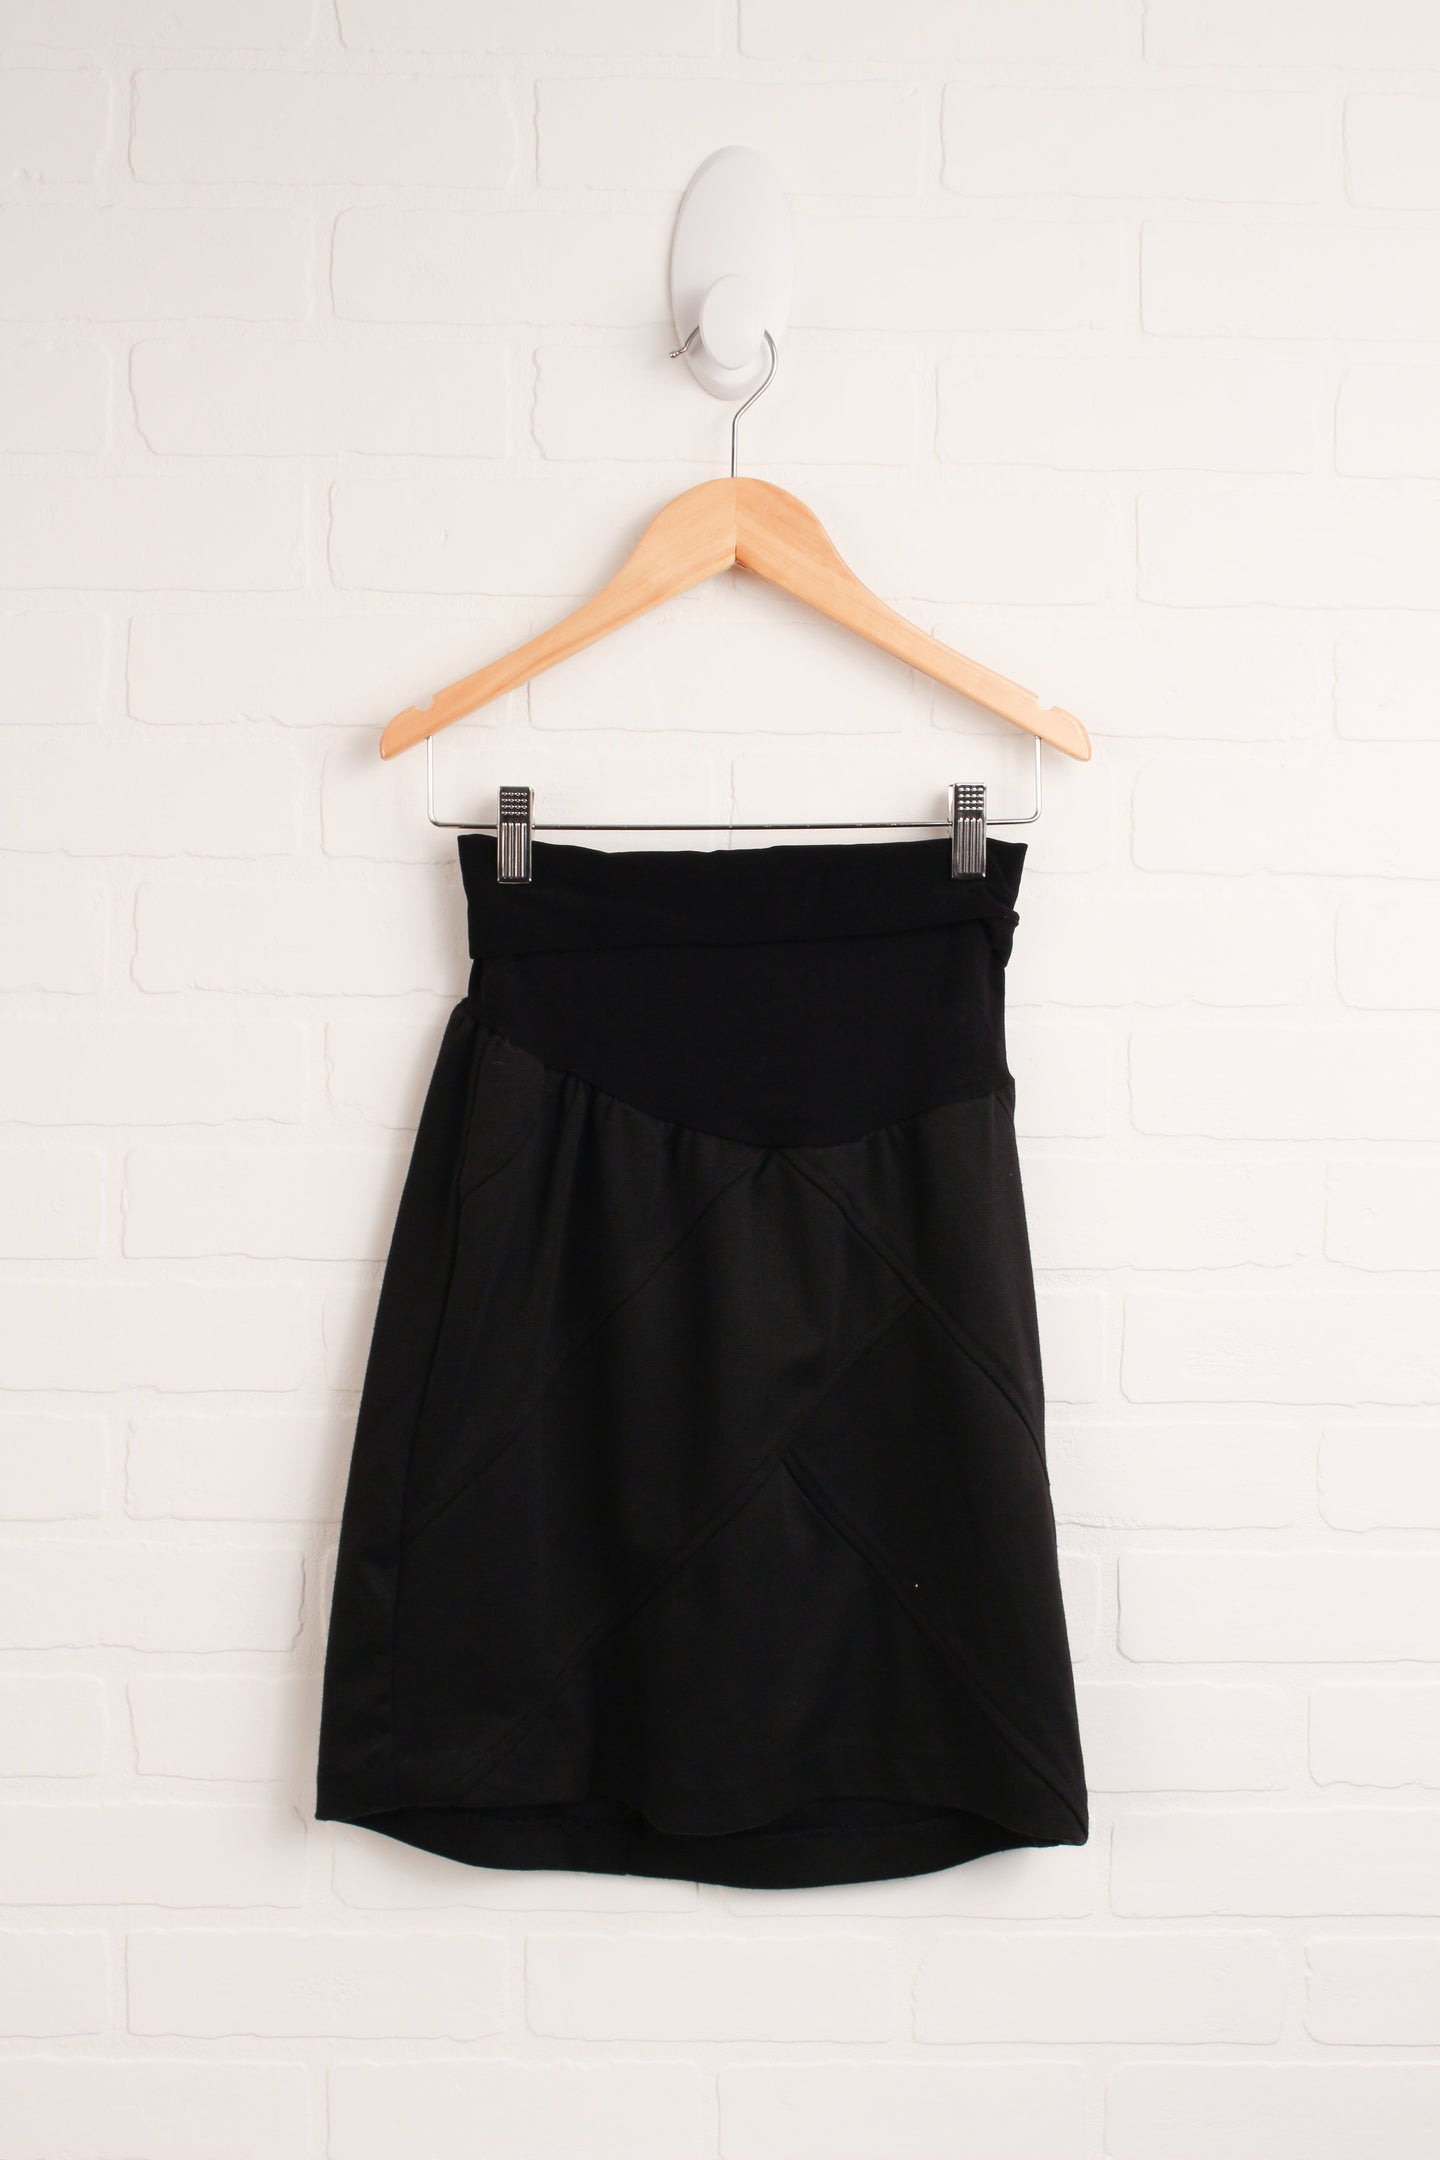 Black Maternity Skirt (Maternity Size S)